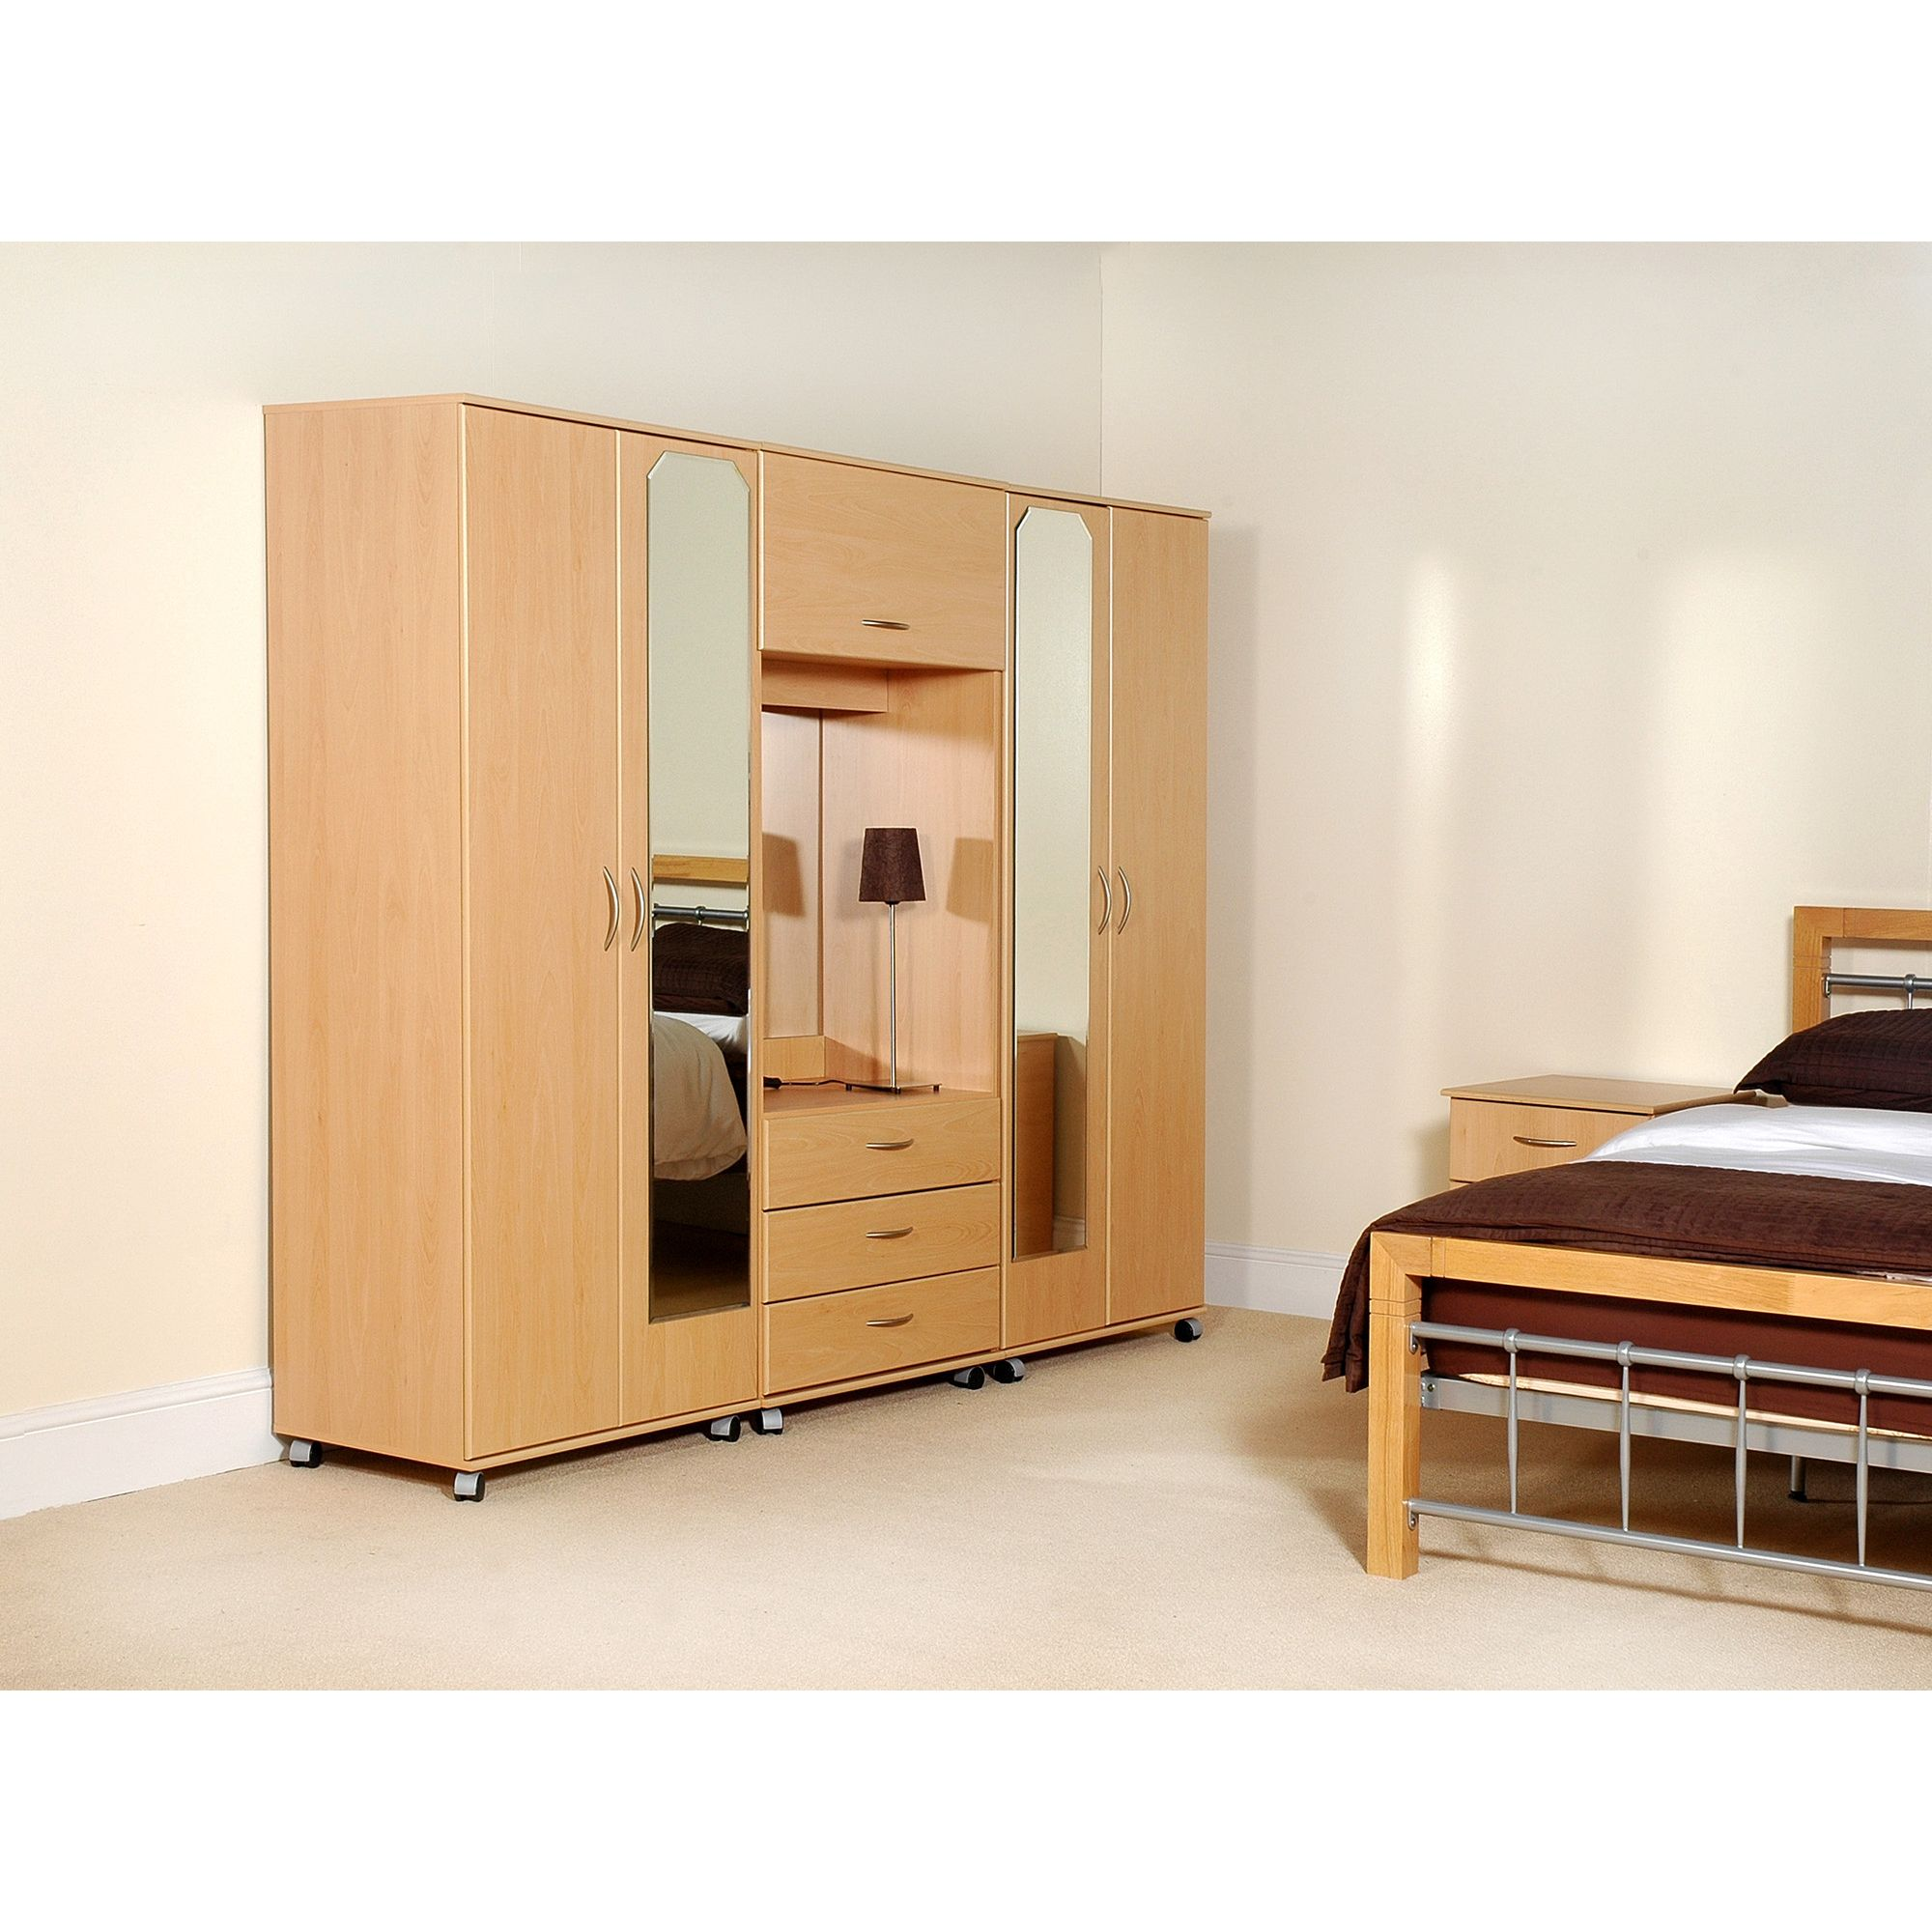 Ideal Furniture New York 4 Door Fitment - Wenge at Tesco Direct